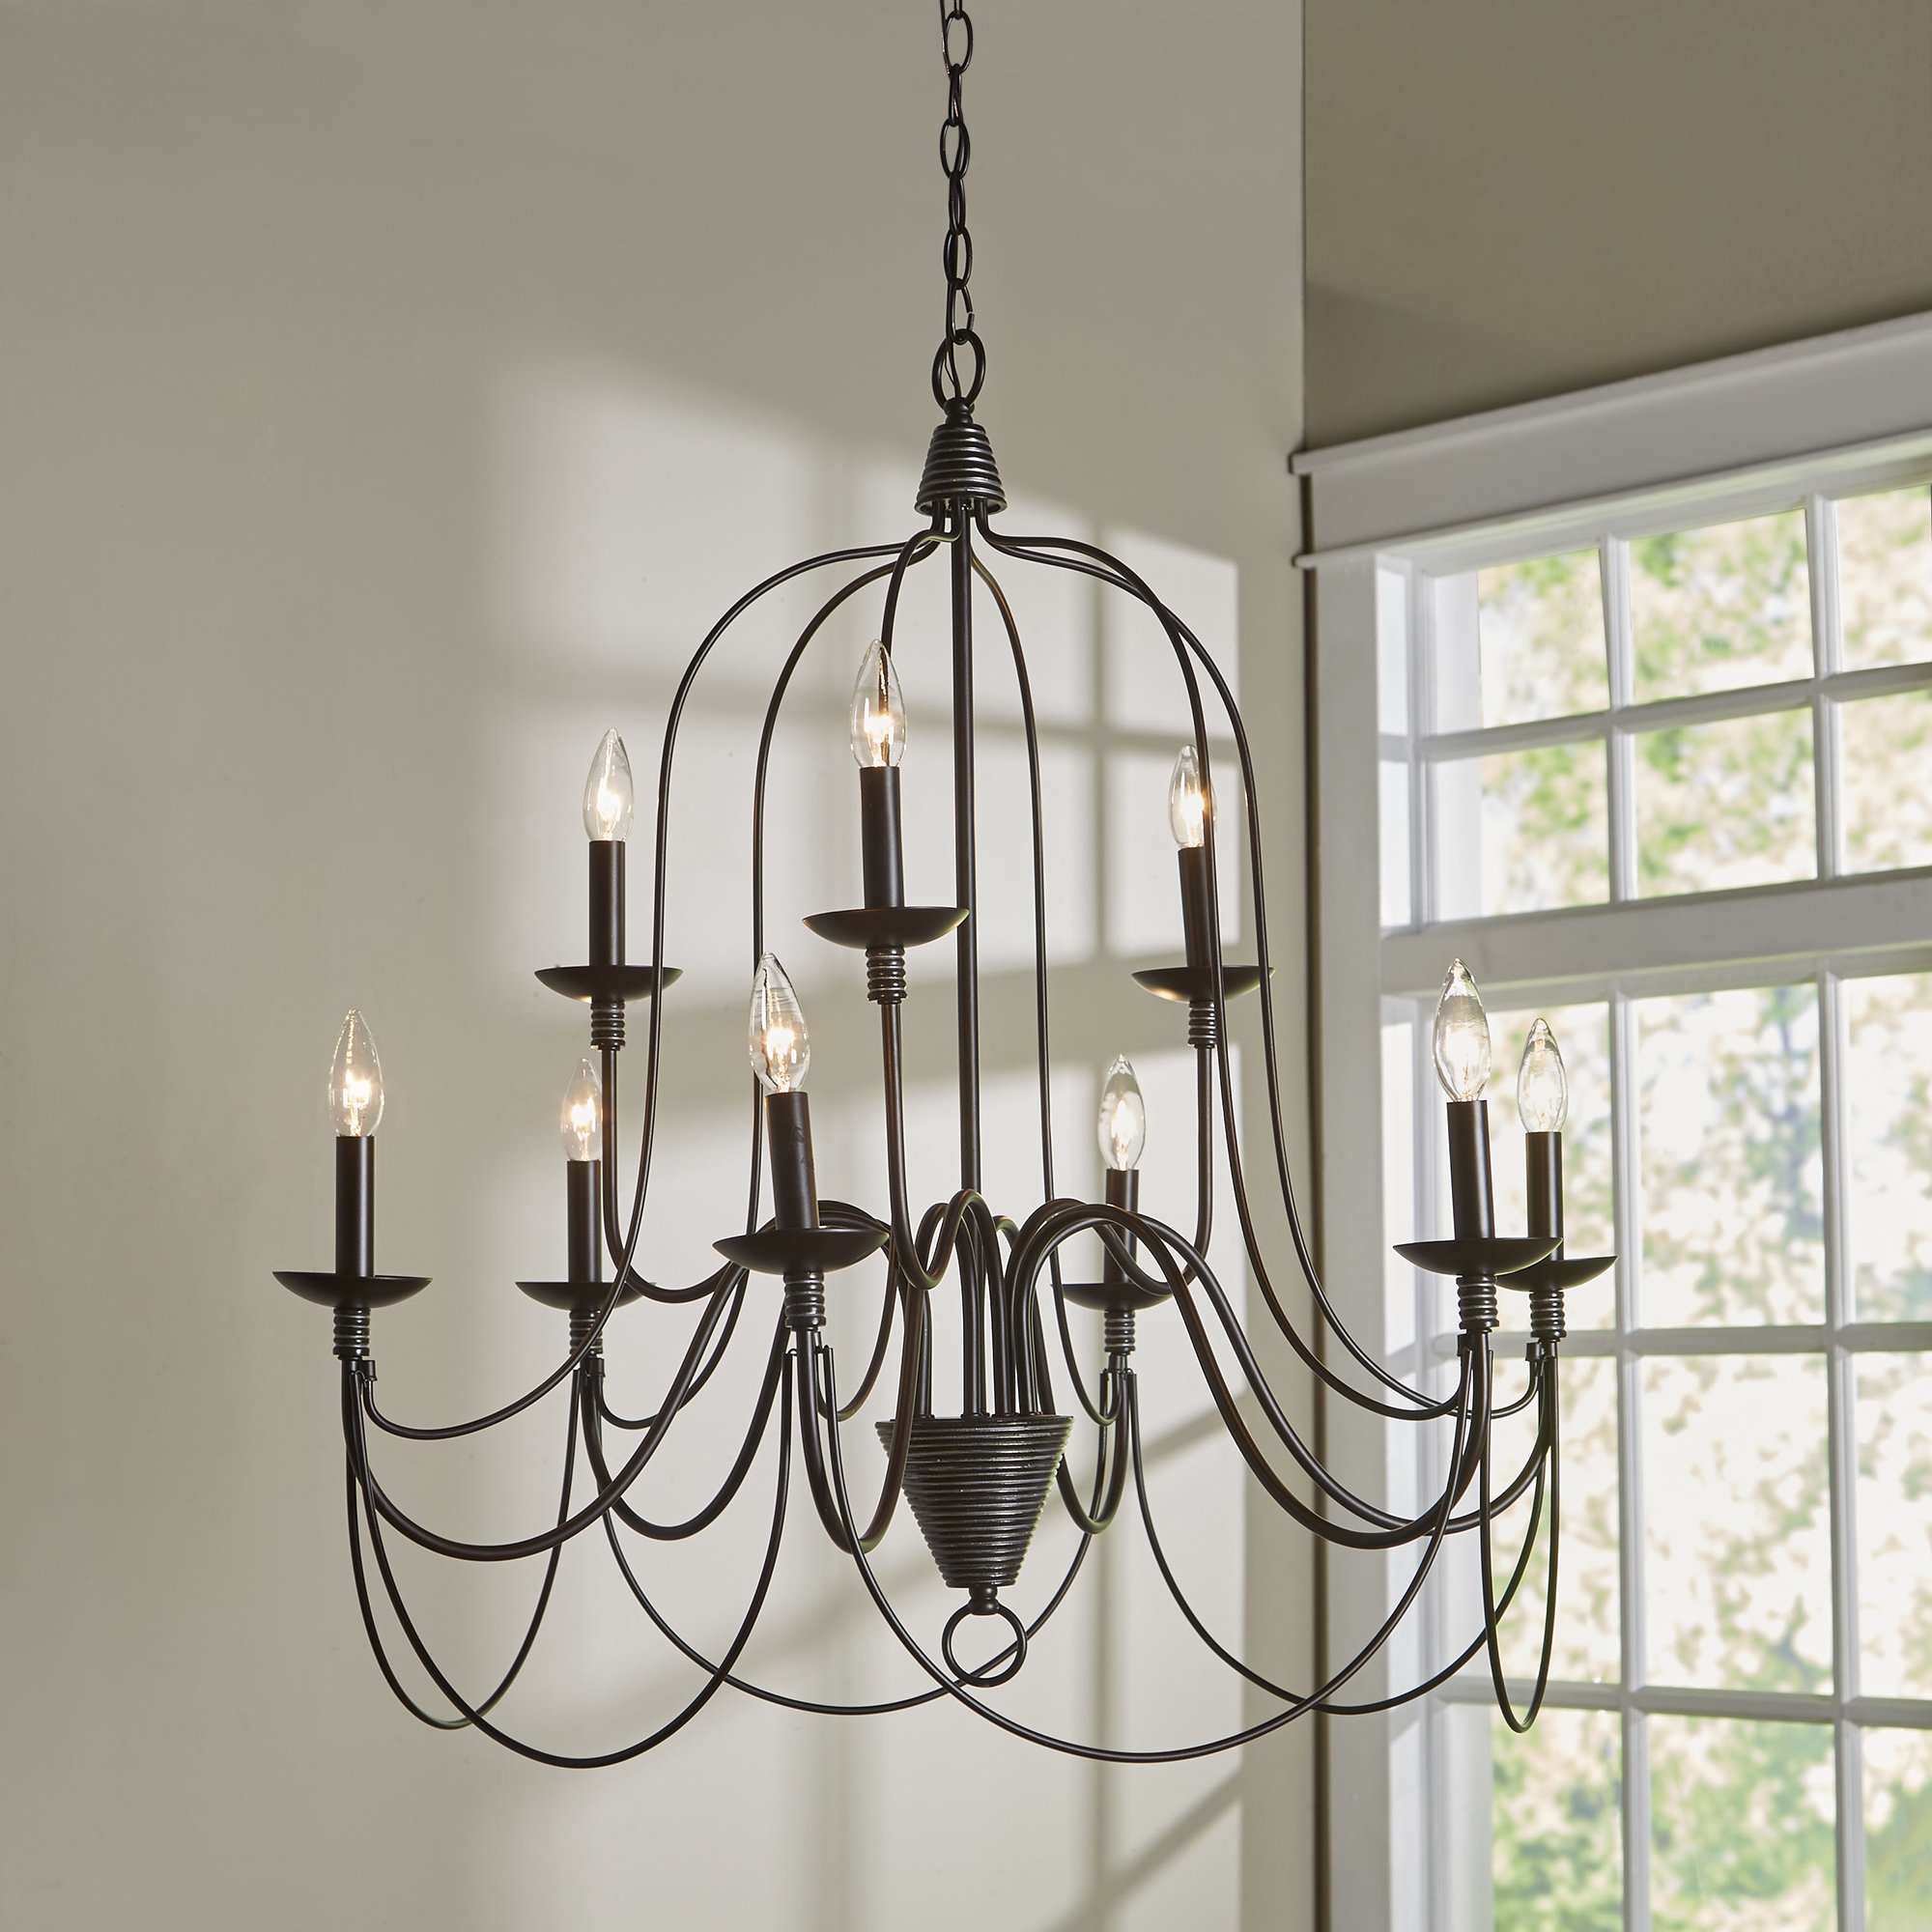 Watford 9 Light Candle Style Chandelier For Well Known Watford 6 Light Candle Style Chandeliers (Gallery 3 of 20)